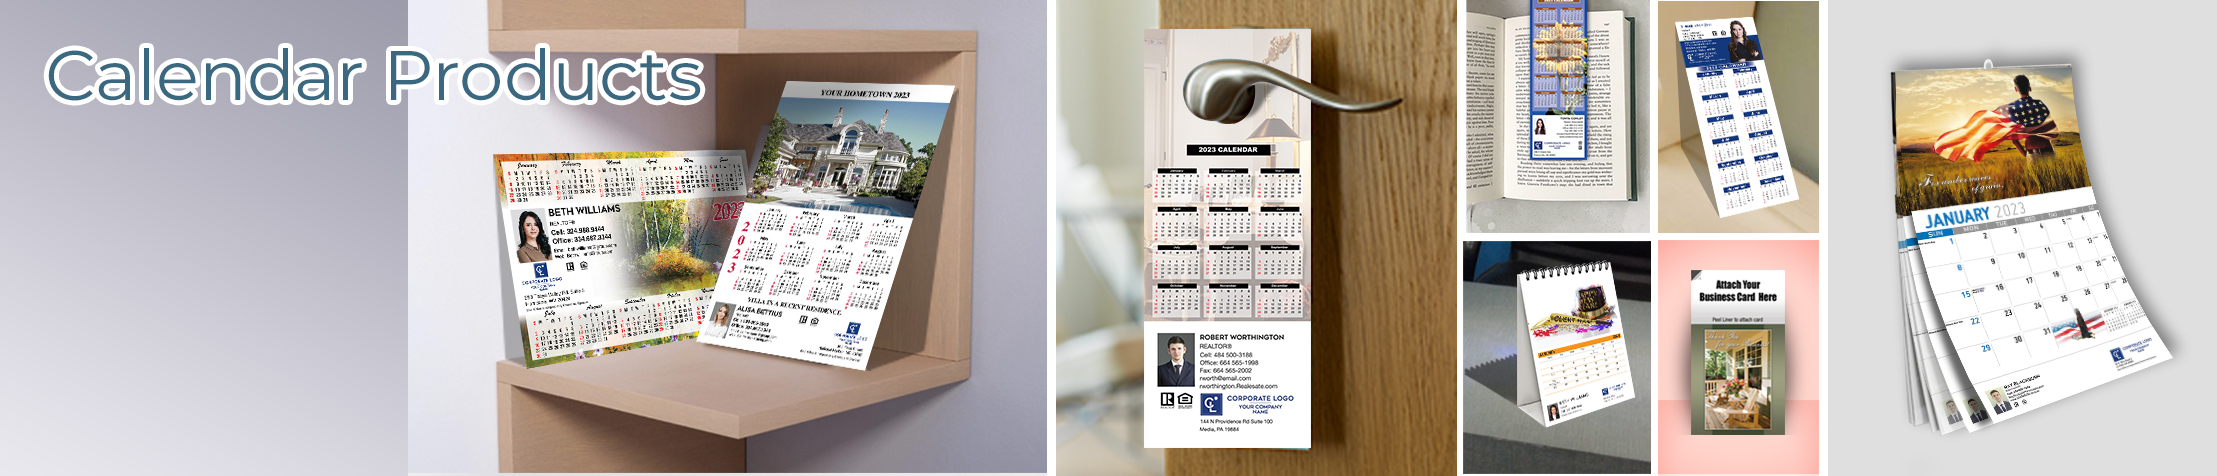 Coldwell Banker Real Estate Calendar Products - Coldwell Banker  2019 calendars, magnets, door hangers, bookmarks, tear away note pads | BestPrintBuy.com